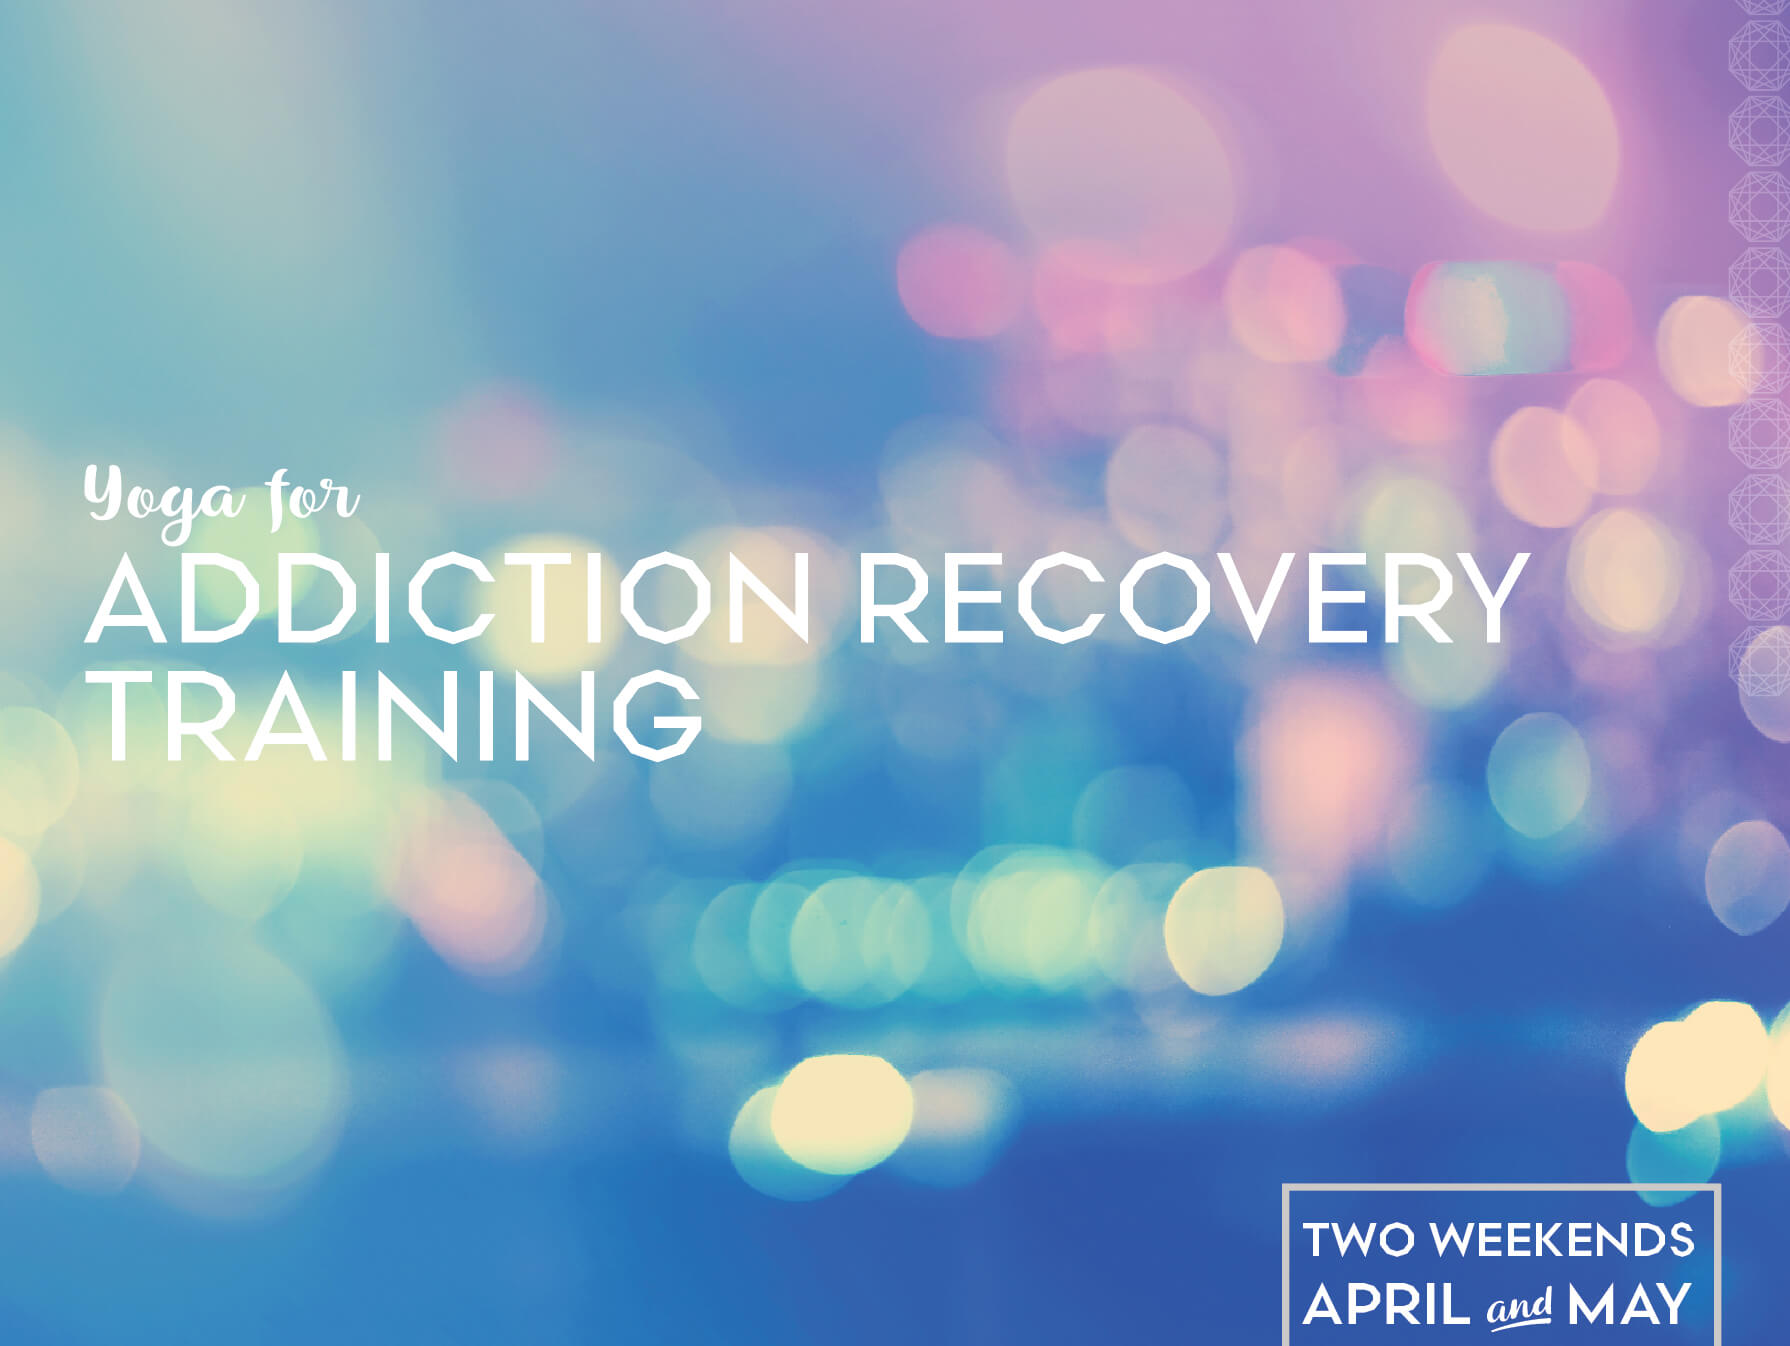 Yoga for Addiction and Recovery Training